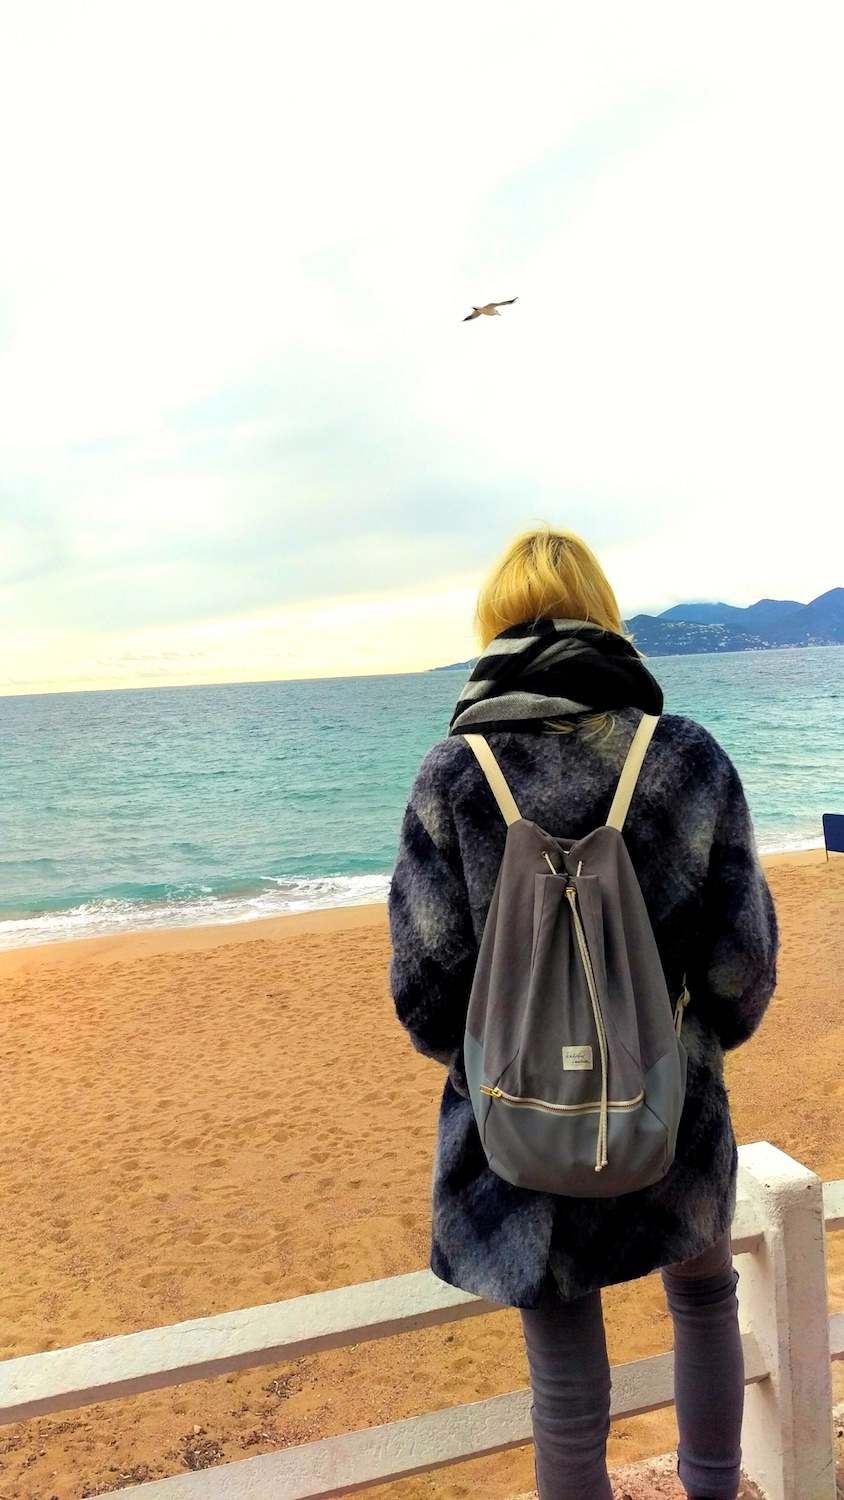 Beachside of Cannes...